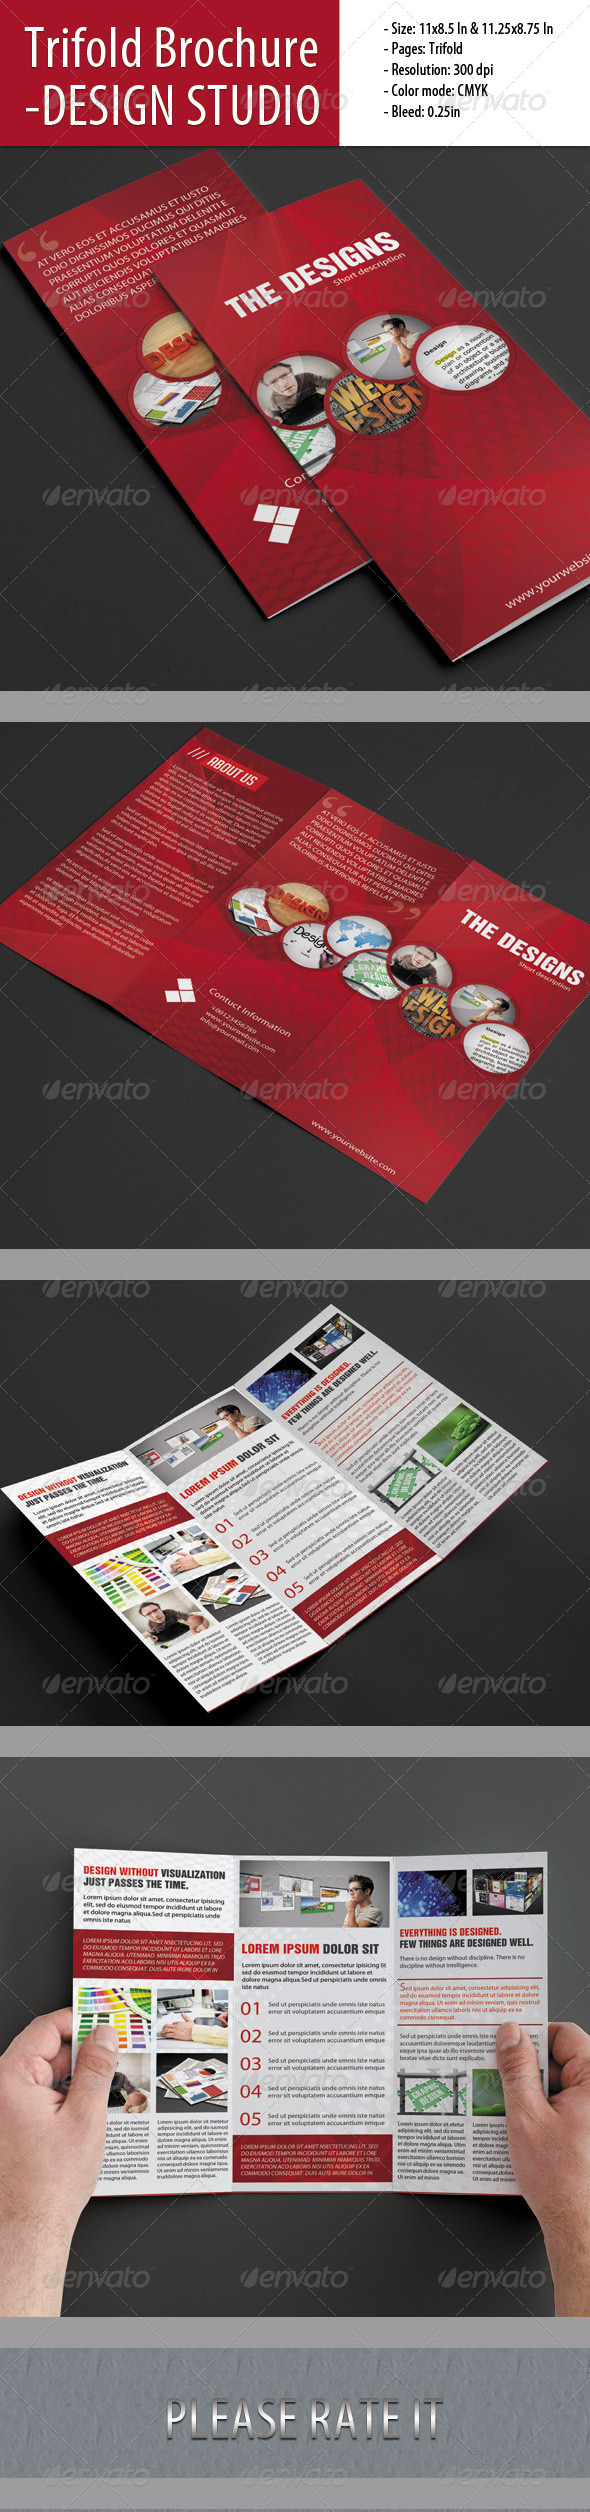 Trifold Brochure For Design Studio - Corporate Brochures